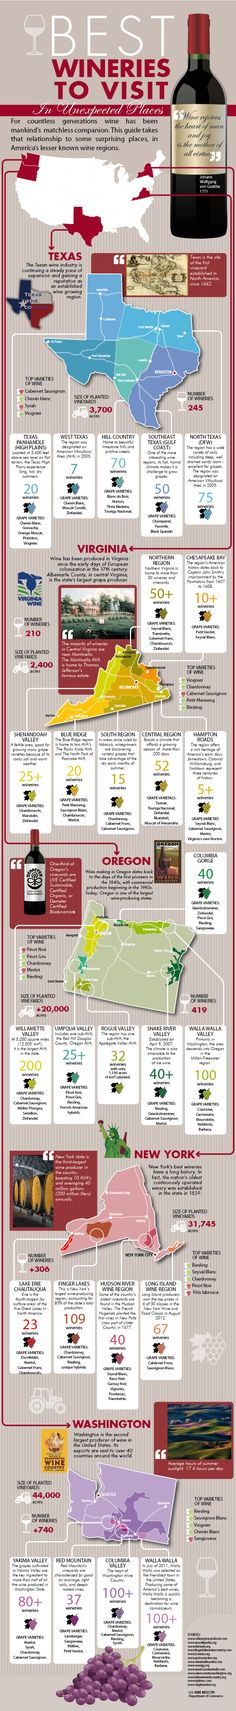 Best #Wineries to visit in the US - Texas, Virginia, Oregon, New York and Washington wine country.